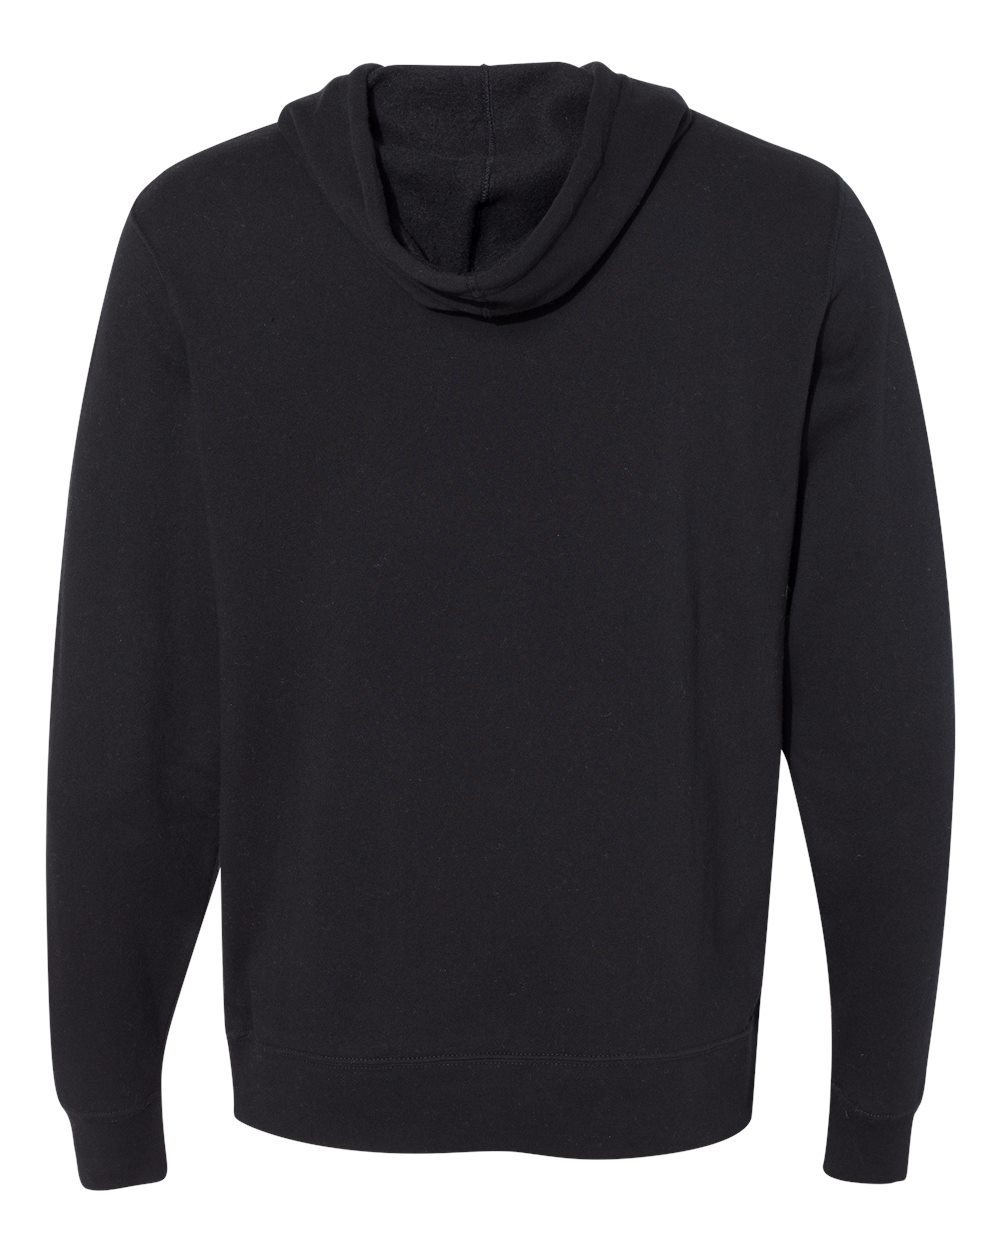 Independent-Trading-Co-Unisex-Hooded-Pullover-Blank-Plain-AFX90UN-up-to-3XL thumbnail 7